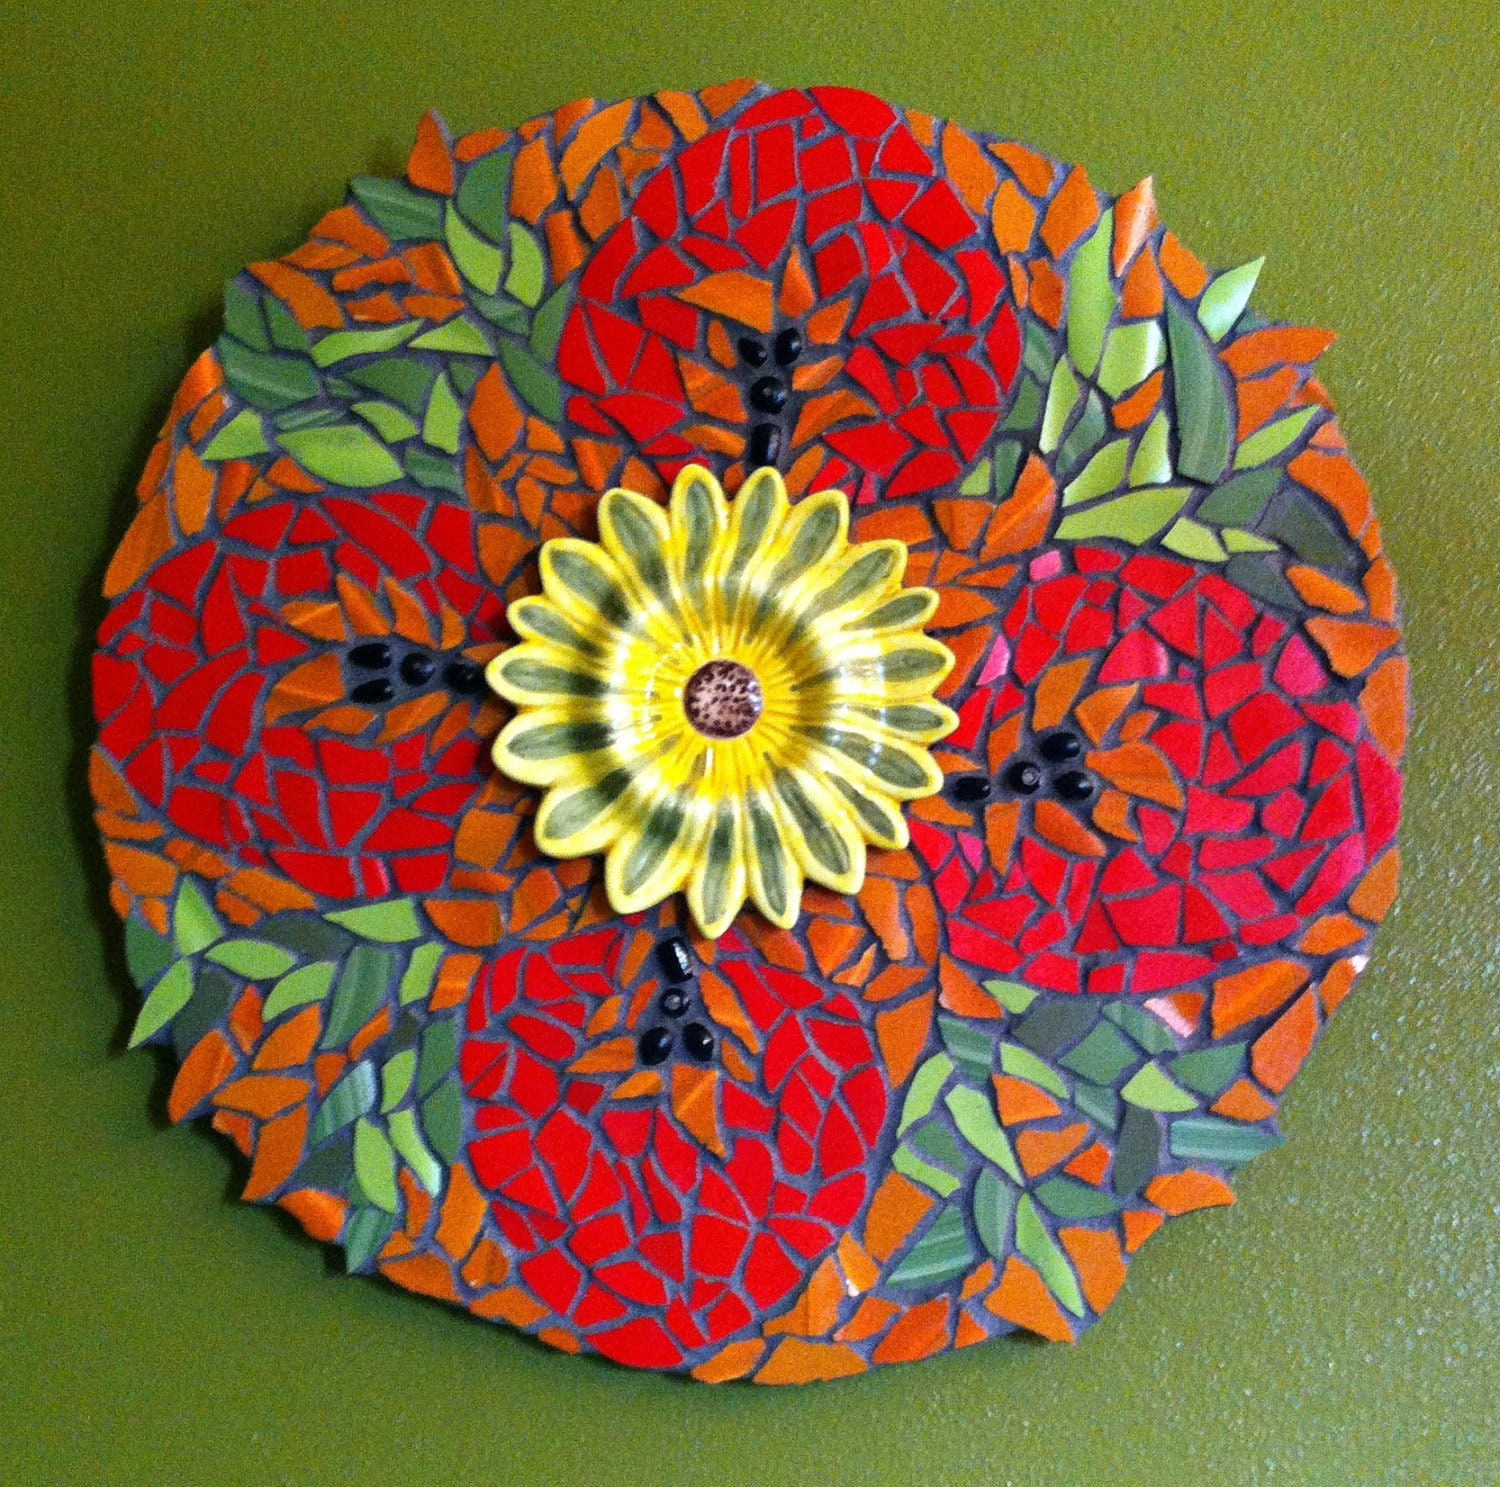 Garden Sunflower Wall Decor : Sunflower mosaic garden wall hanging pique assiette